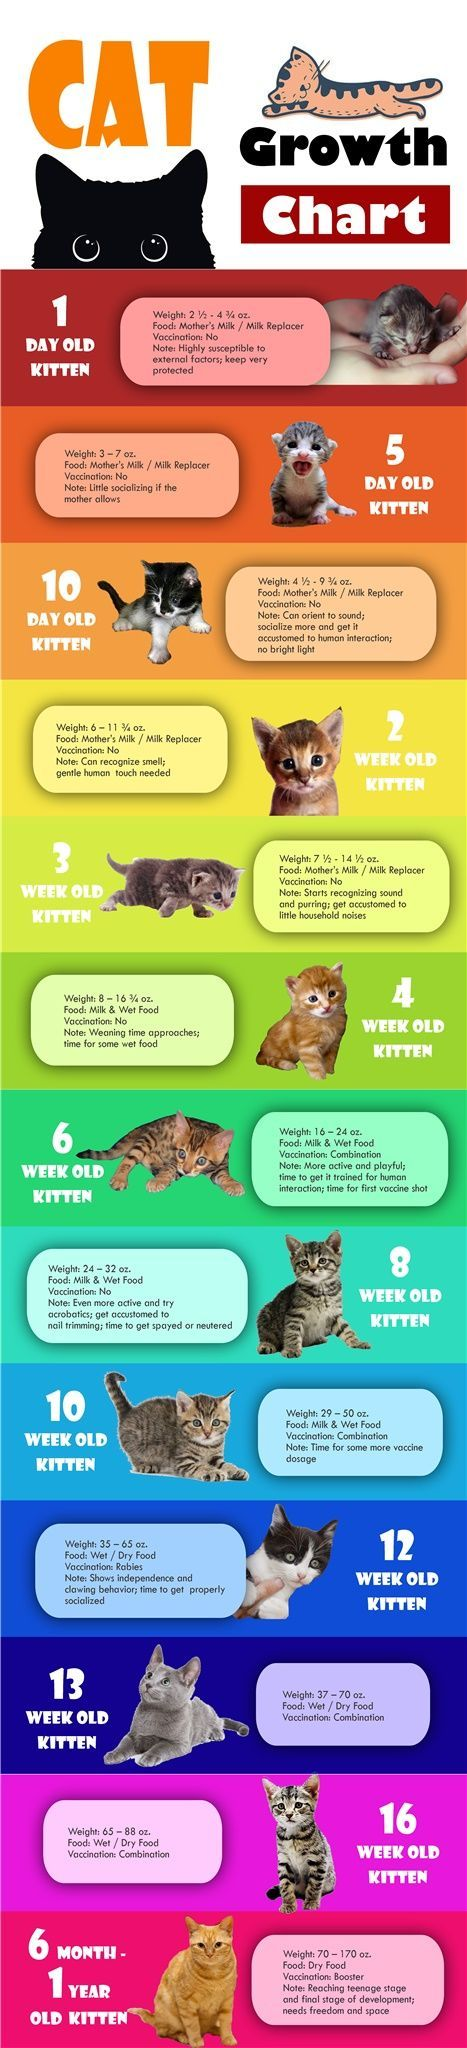 Infographic Kitten Cat Growth Chart By Age Weight And Food Source Http